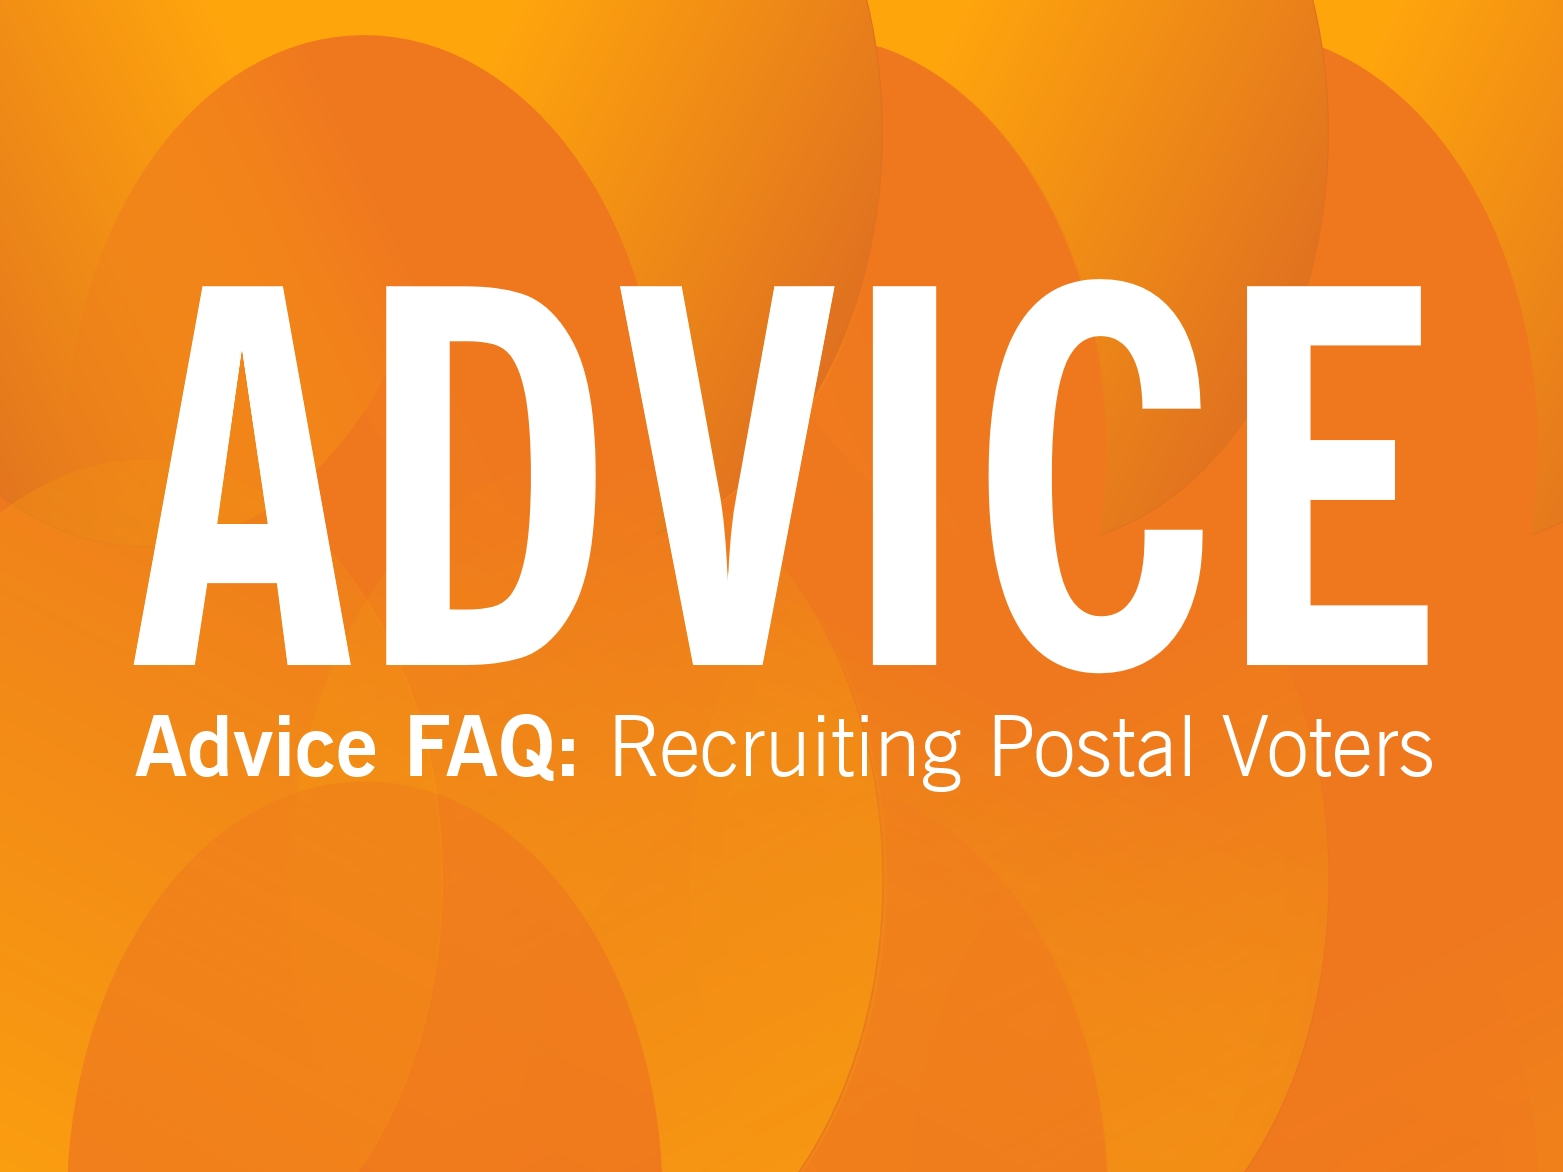 ADVICE: Recruiting Postal Voters